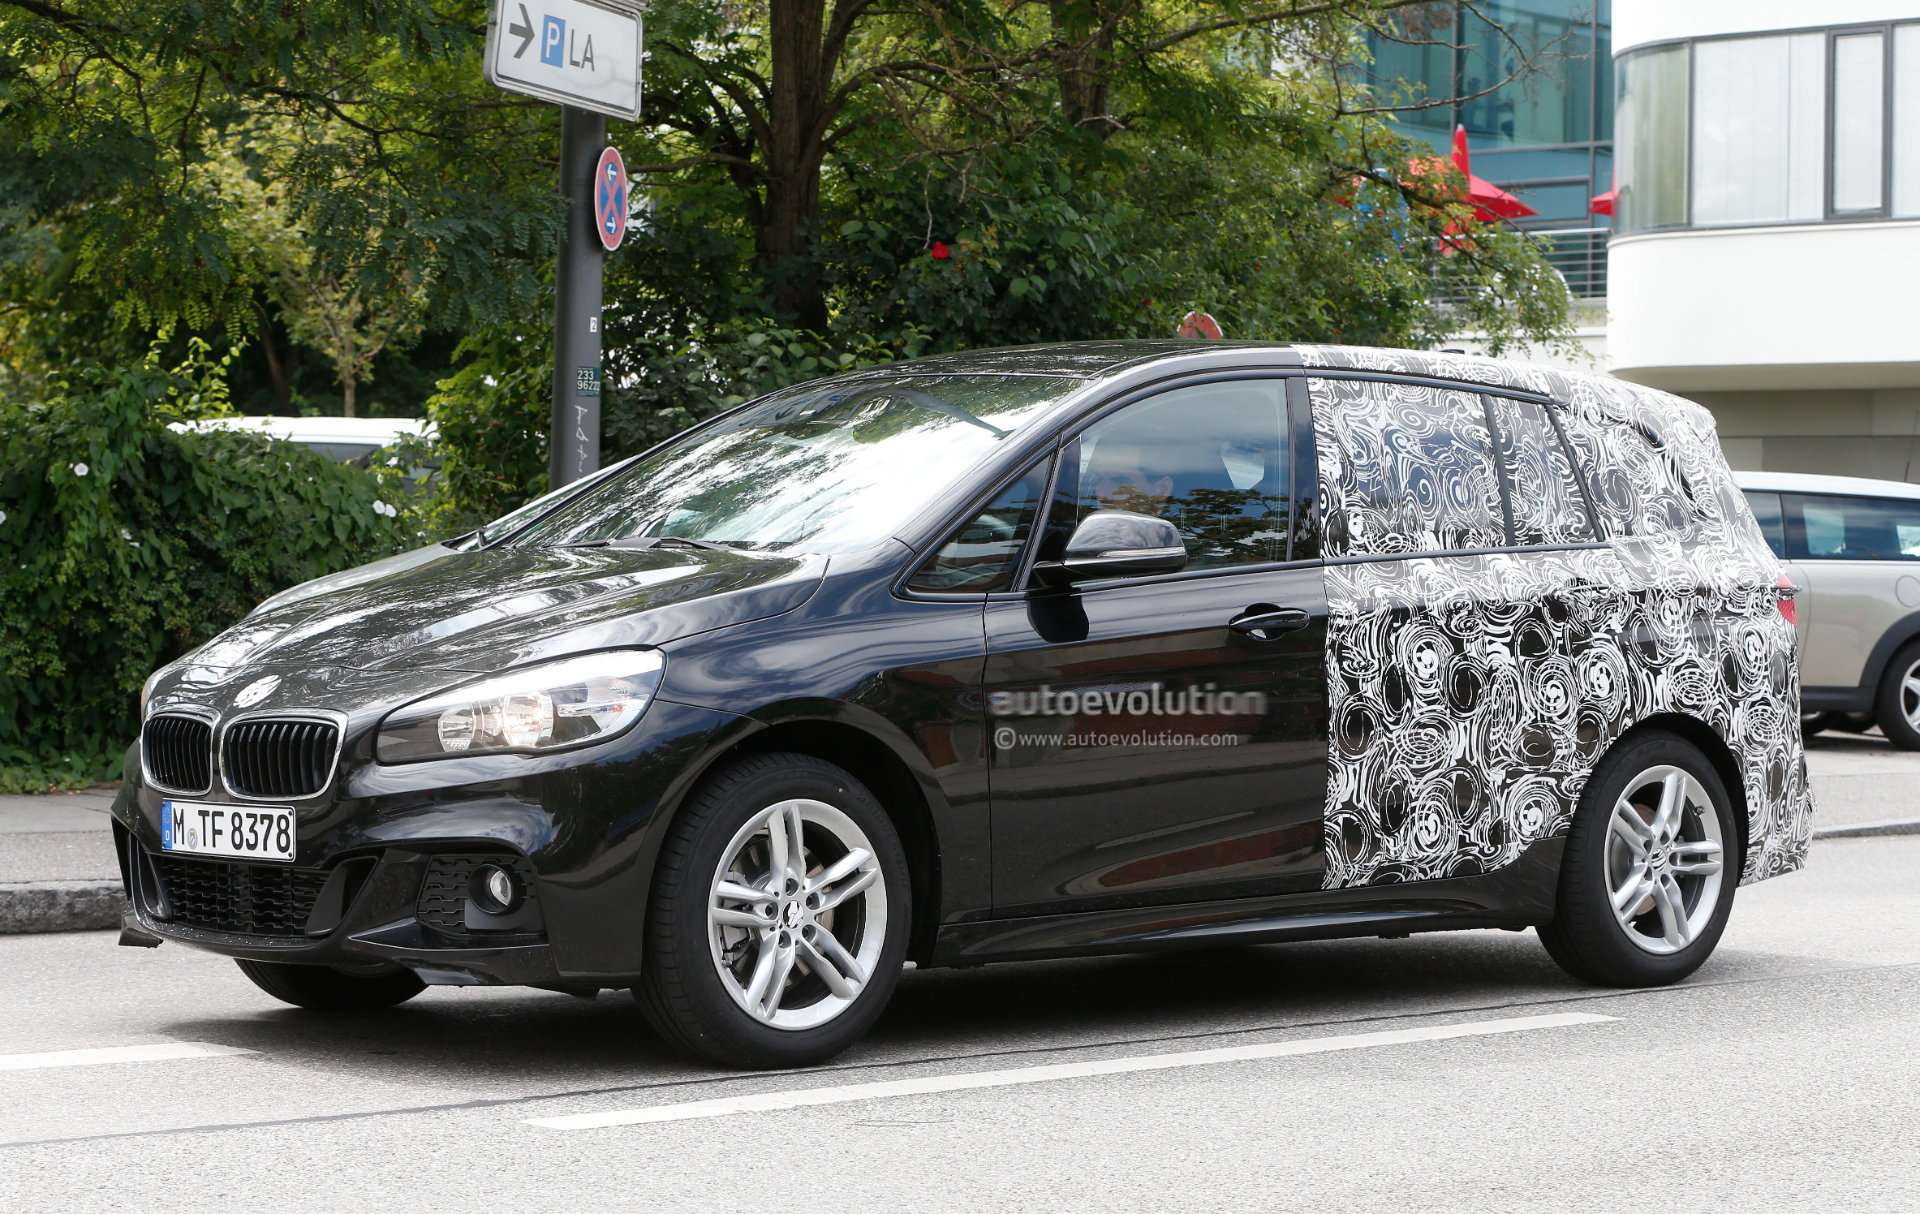 Bmw 2 Series Active Tourer 7 Seater Spotted Wearing M Sport Package